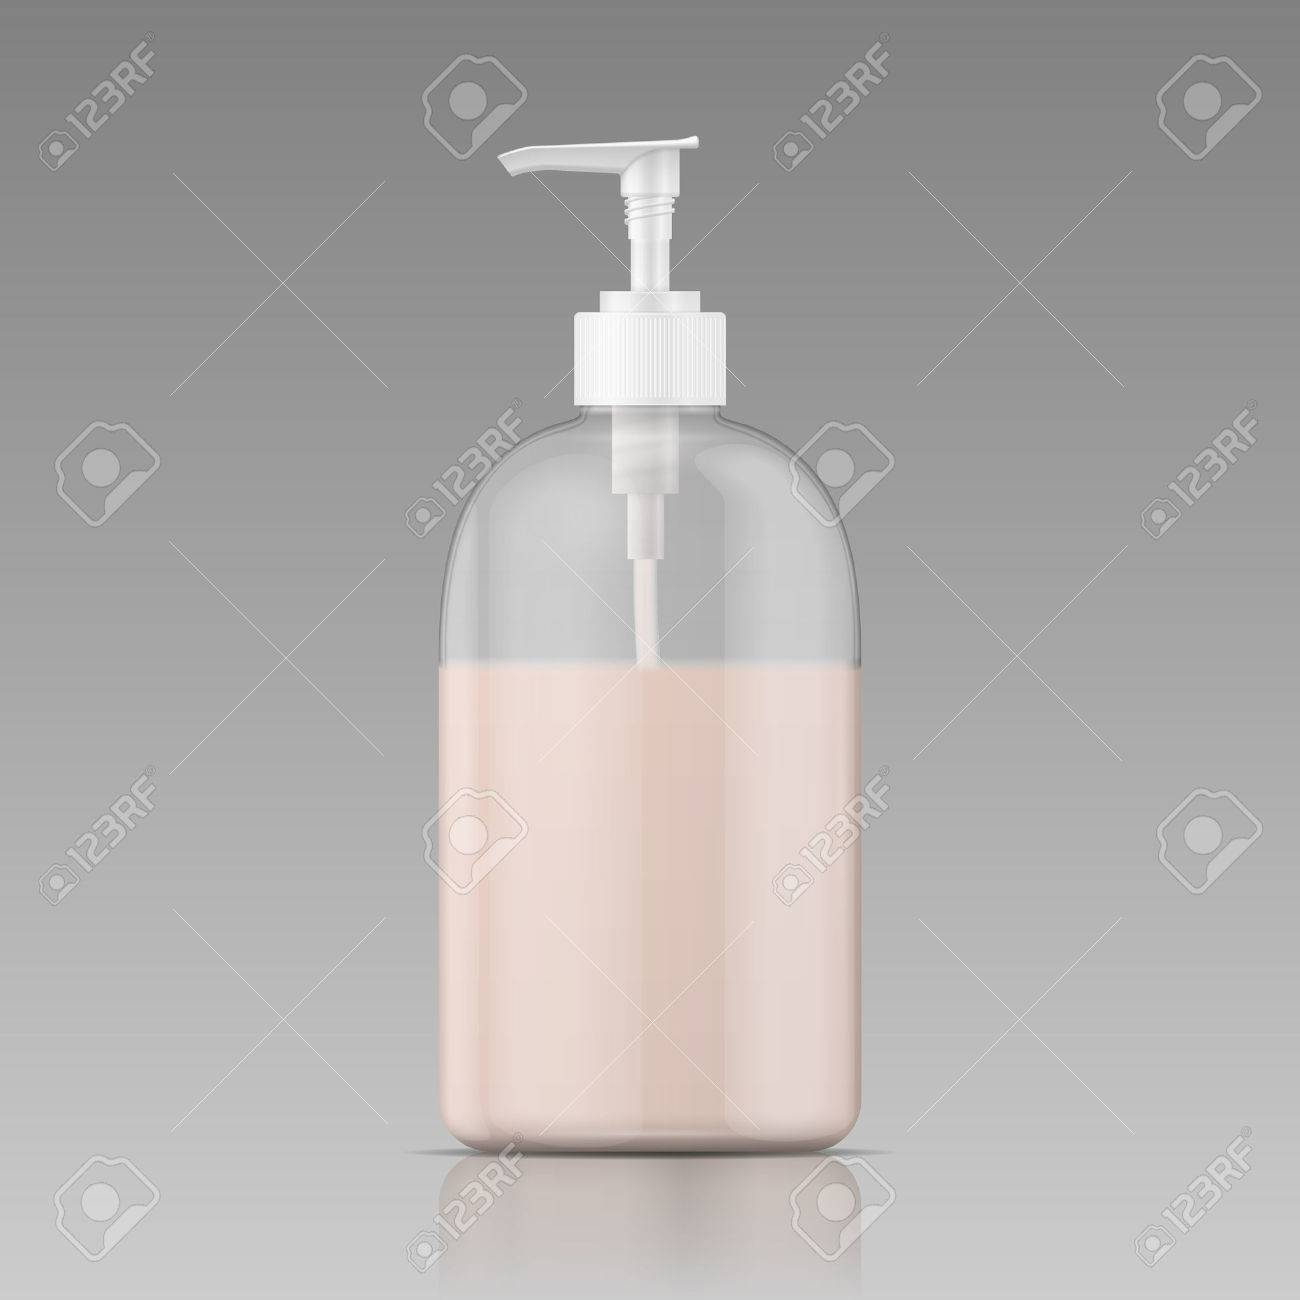 Soap And Shampoo Dispenser Plastic Bottle With Dispenser Cap With Liquid Soap Shampoo